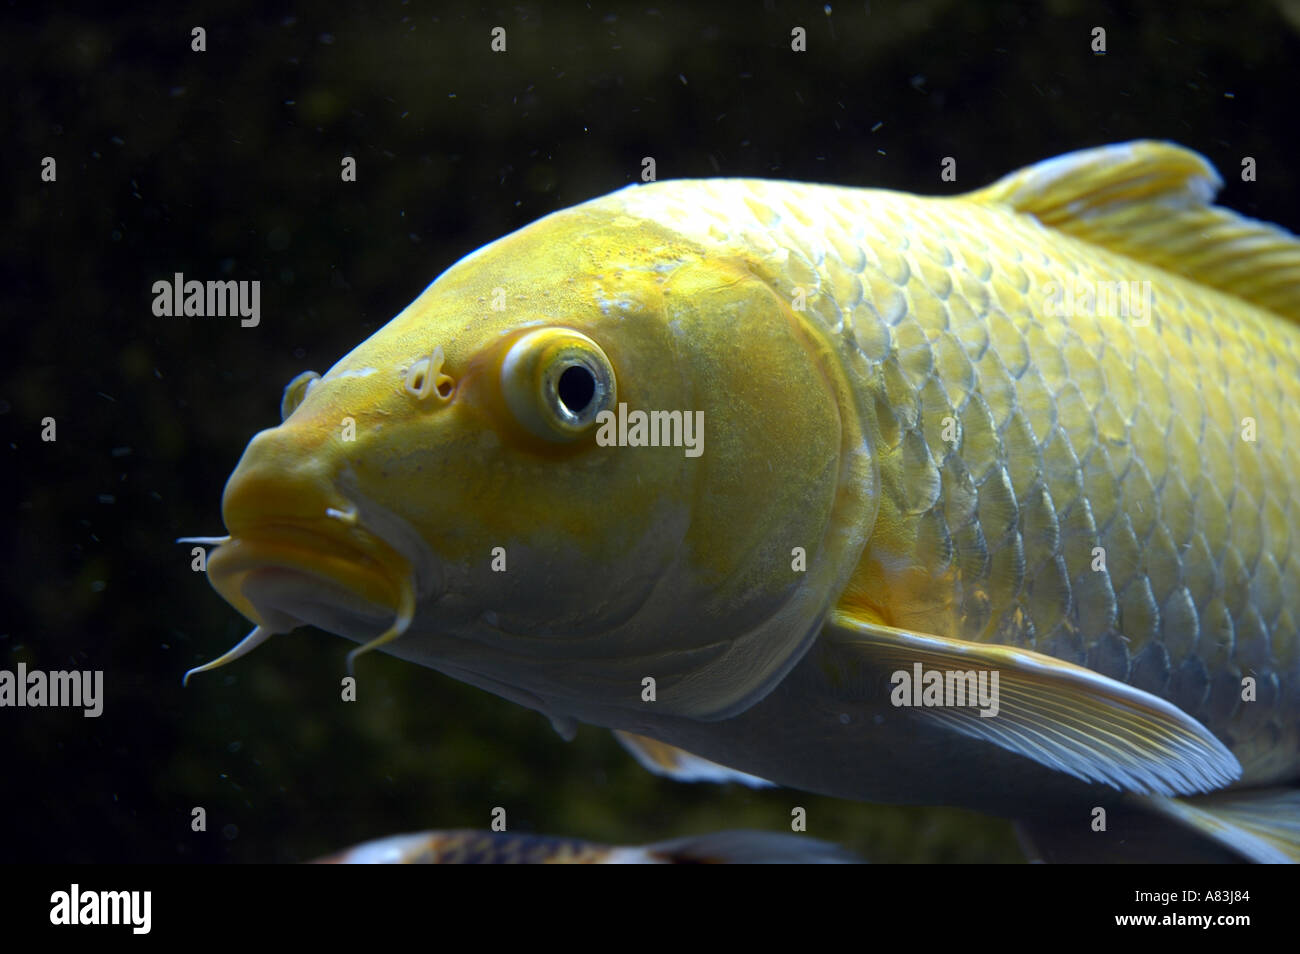 Yellow cold water fish in tank stock photo royalty free for What are cold water fish